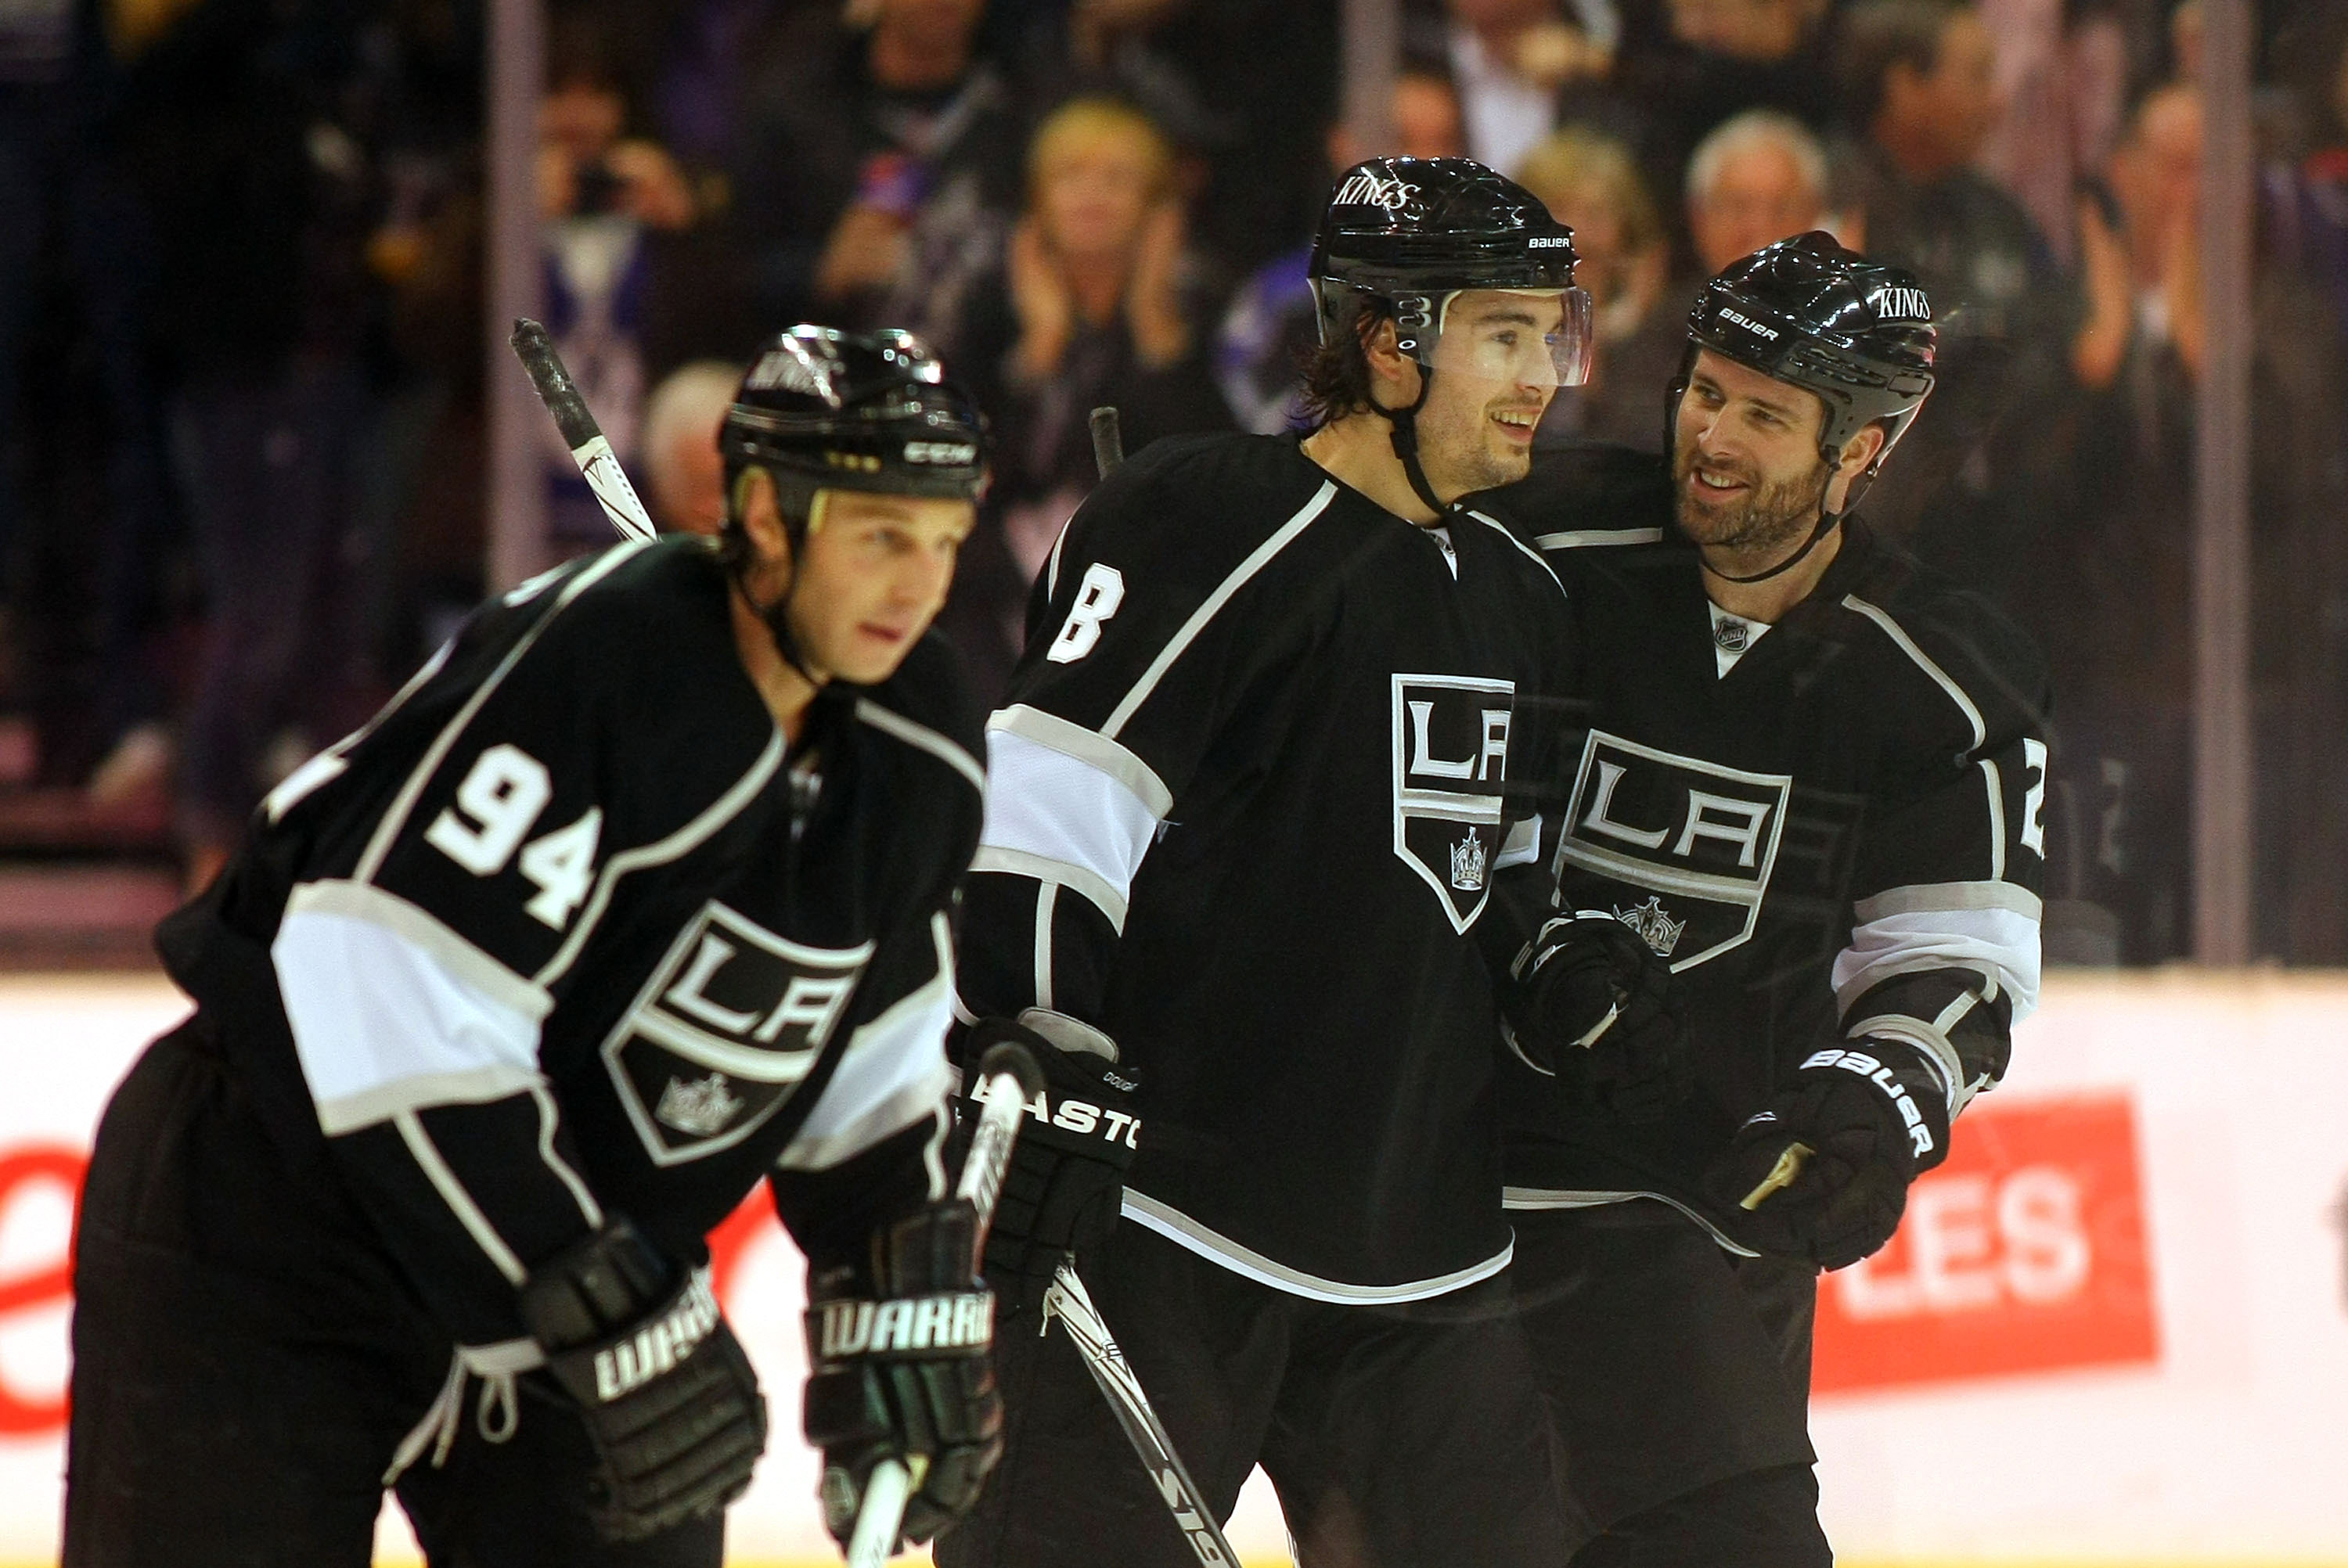 LOS ANGELES, CA - MARCH 03:  Ryan Smyth #94, Drew Doughty #8 and Dustin Penner #25 of the Los Angeles Kings skate back to the bench after celebrating a goal by teammate Jarret Stoll #28 (not in photo) against the Phoenix Coyotes in the third period during